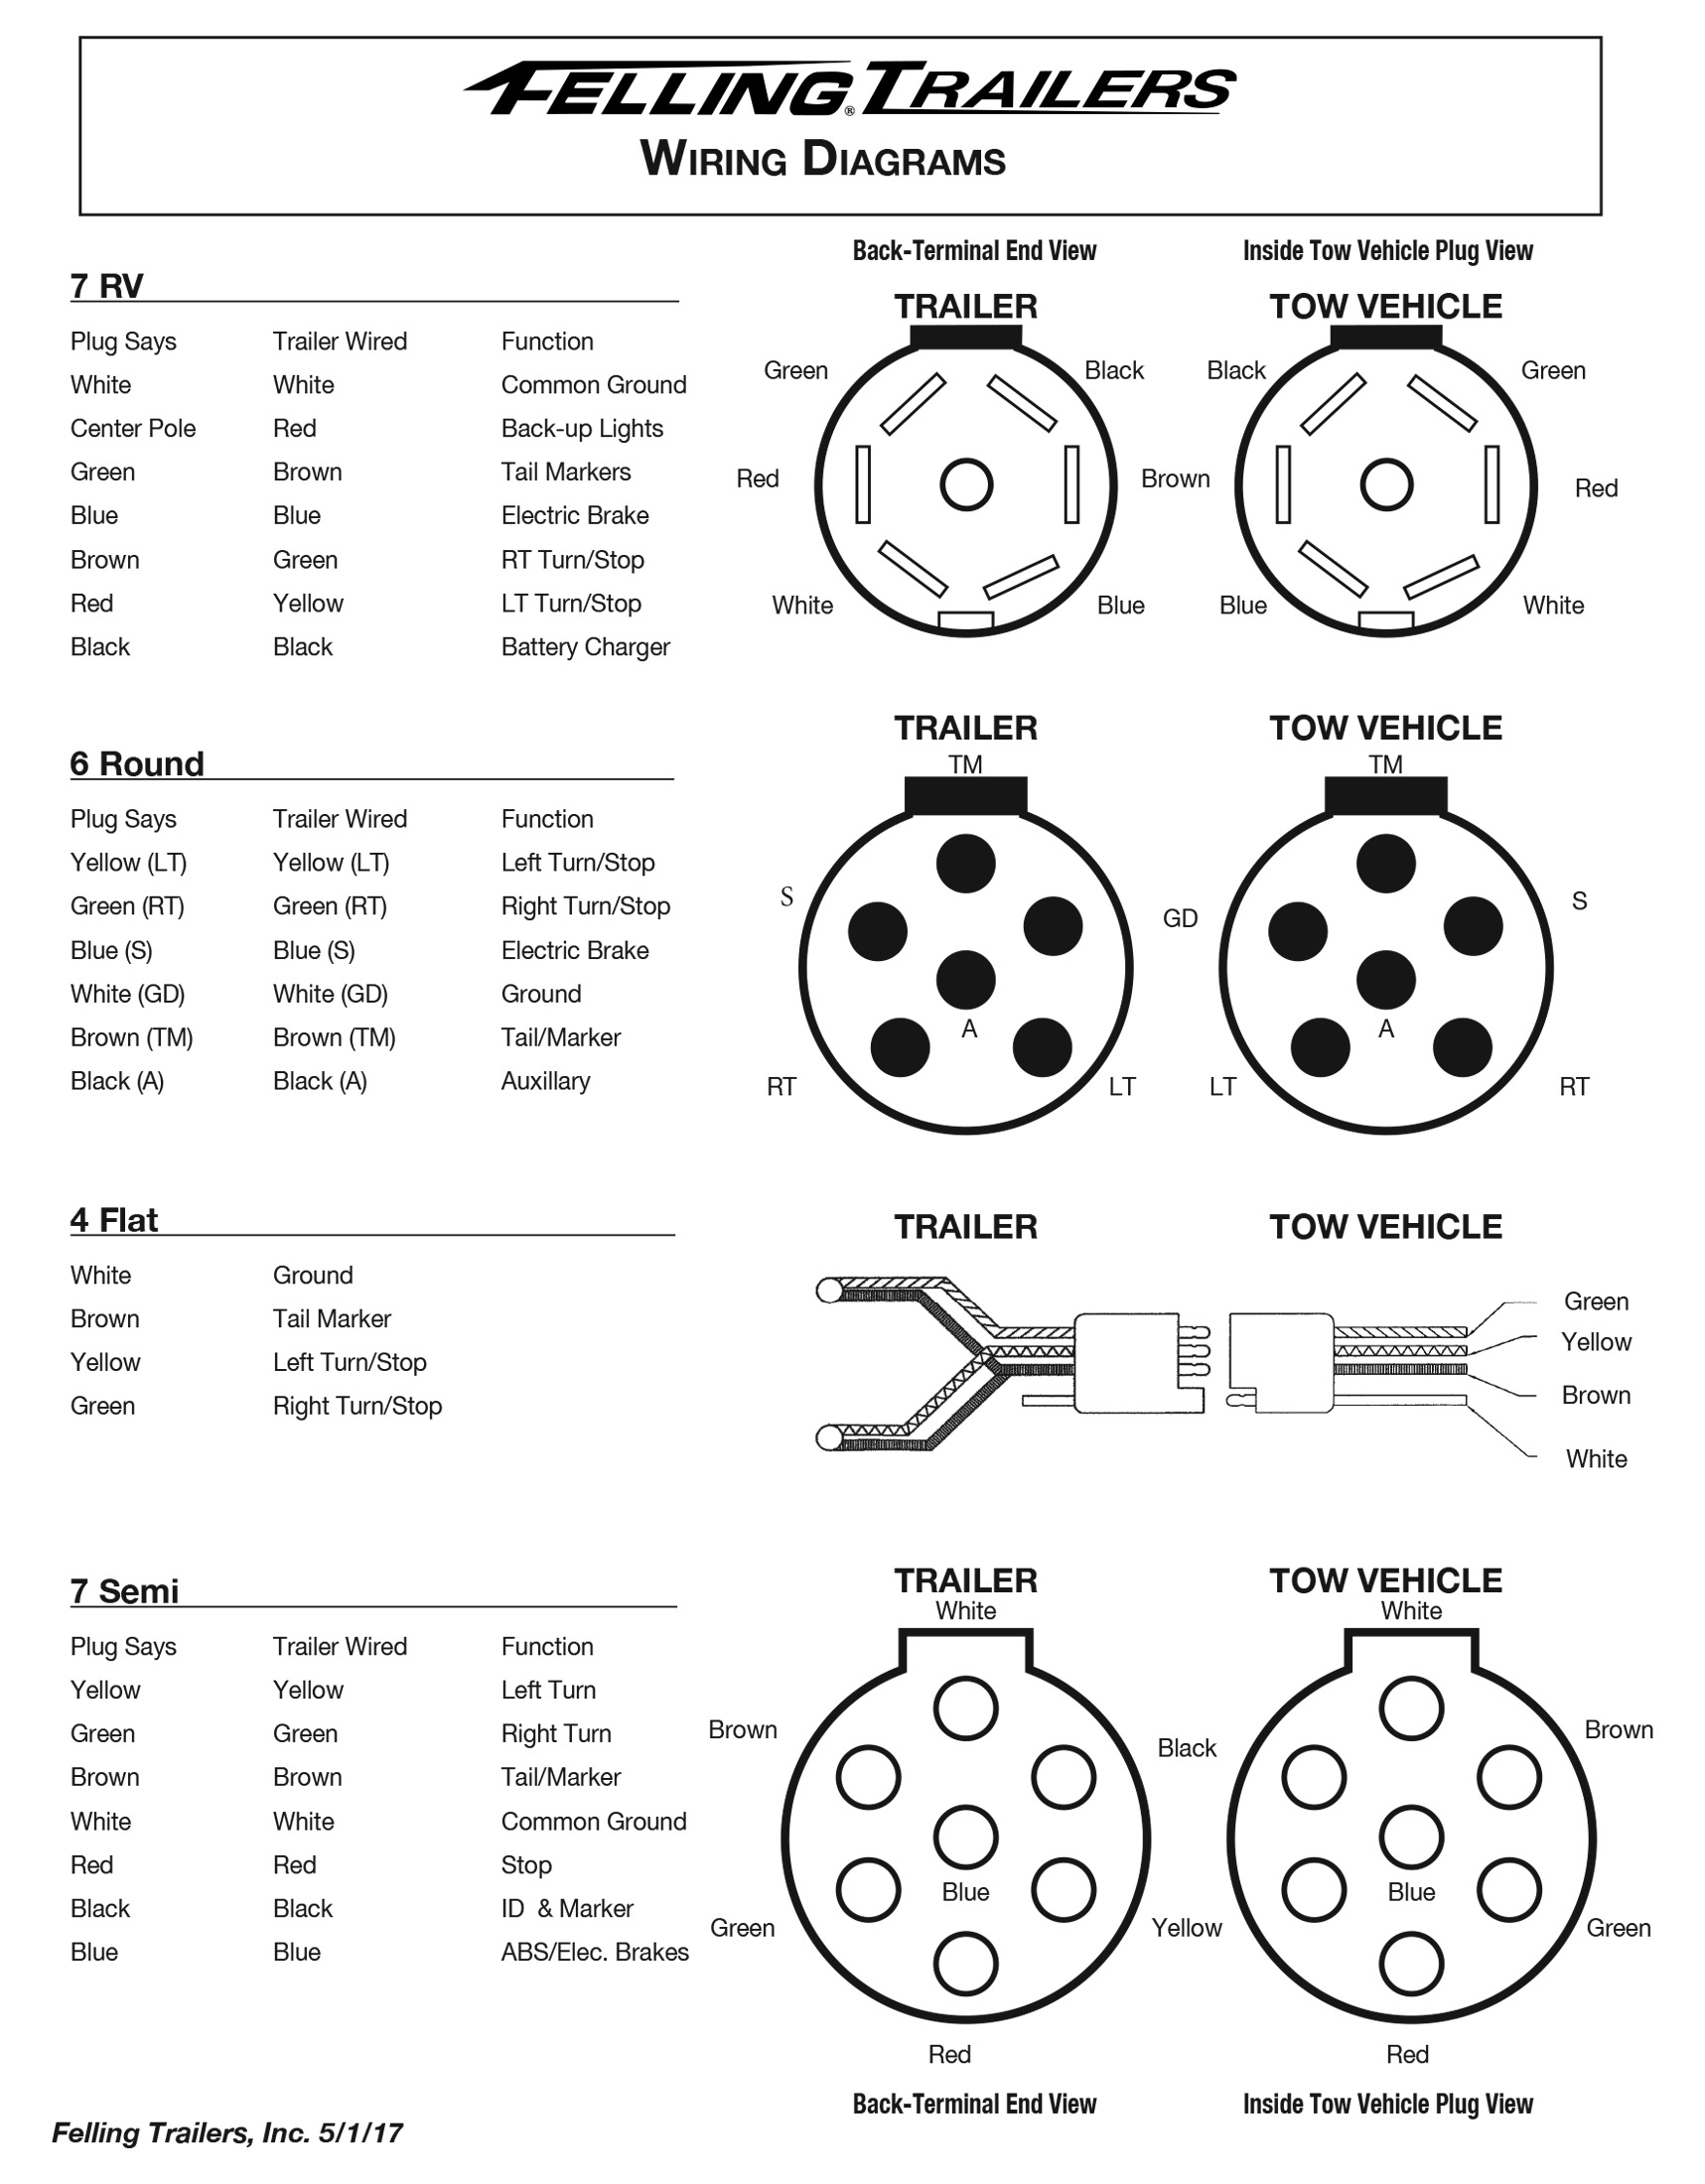 Service- Felling Trailers Wiring Diagrams, Wheel Toque - 7 Plug Trailer Wiring Diagram